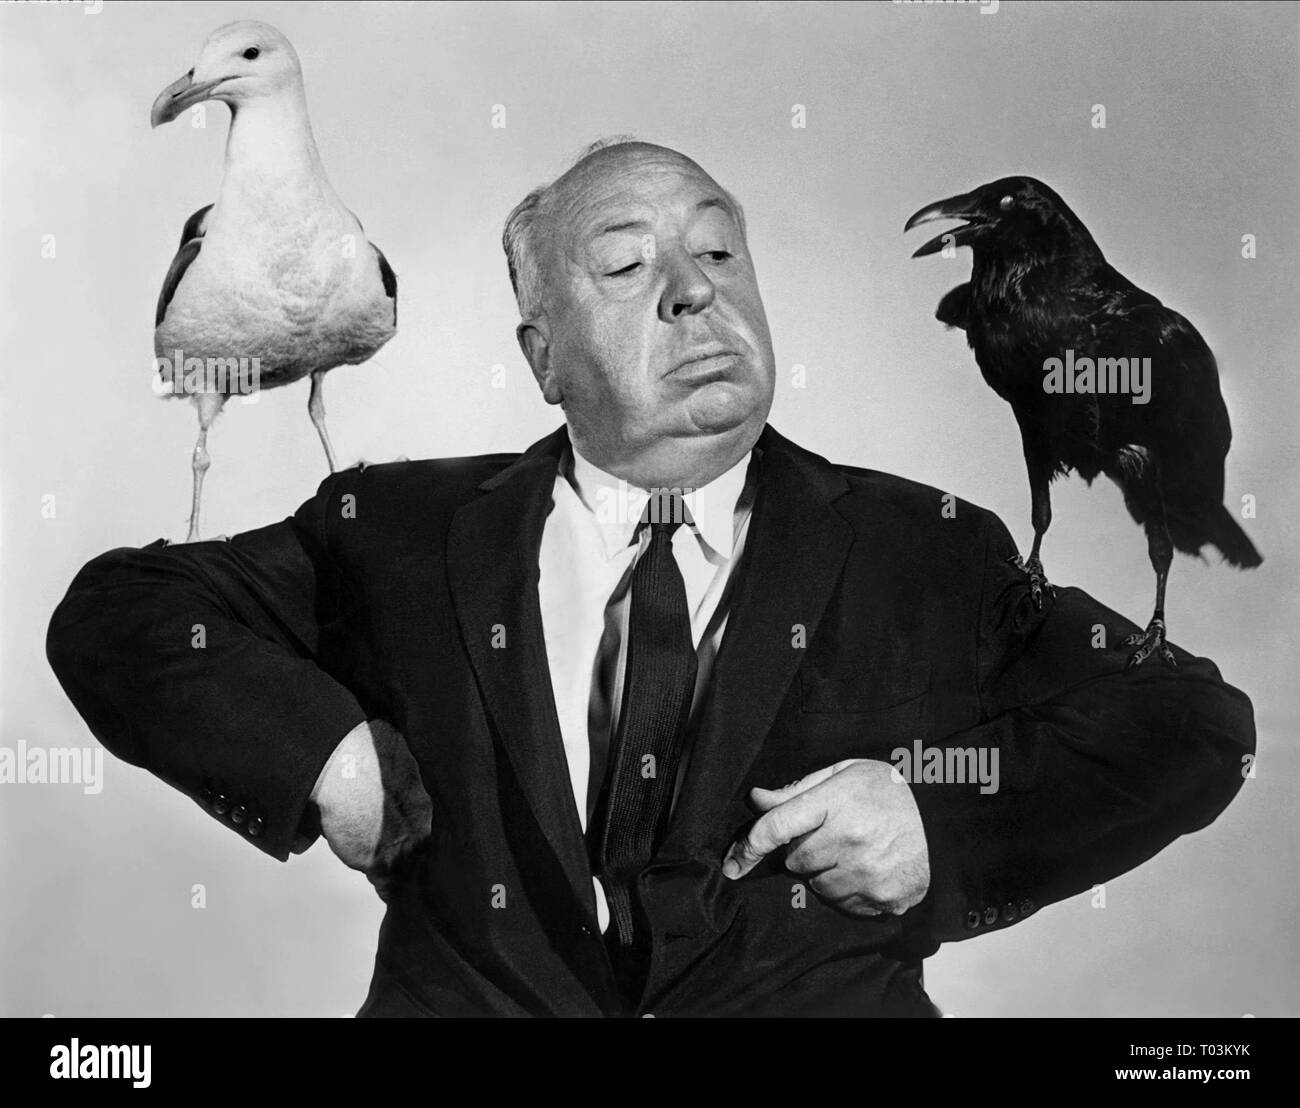 ALFRED HITCHCOCK, CROW, SEAGULL PUBLICITY SHOT, THE BIRDS, 1963 Stock Photo